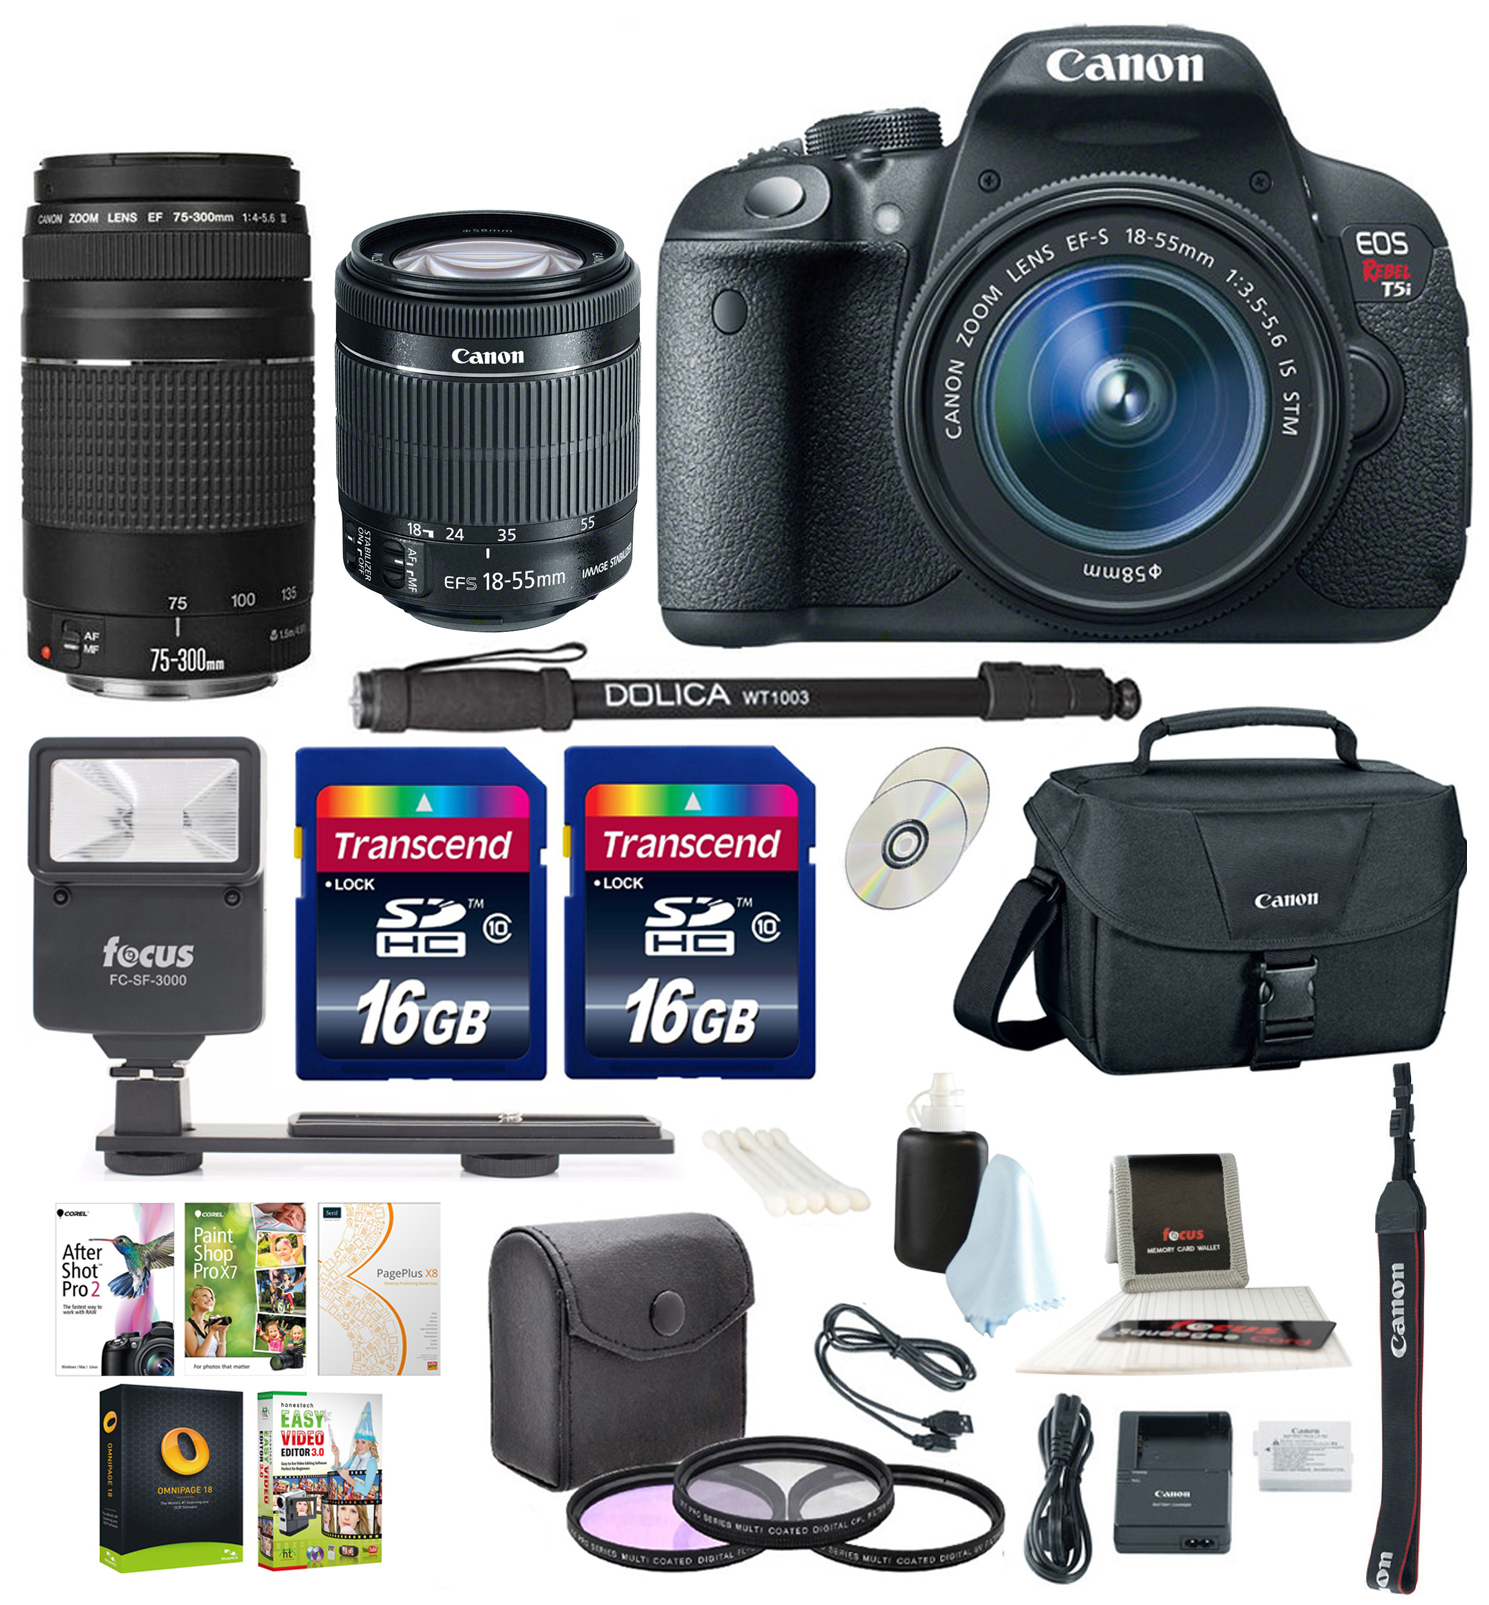 Canon Rebel T5i w/ 18-55mm and 75-300mm lenses + Promotio...